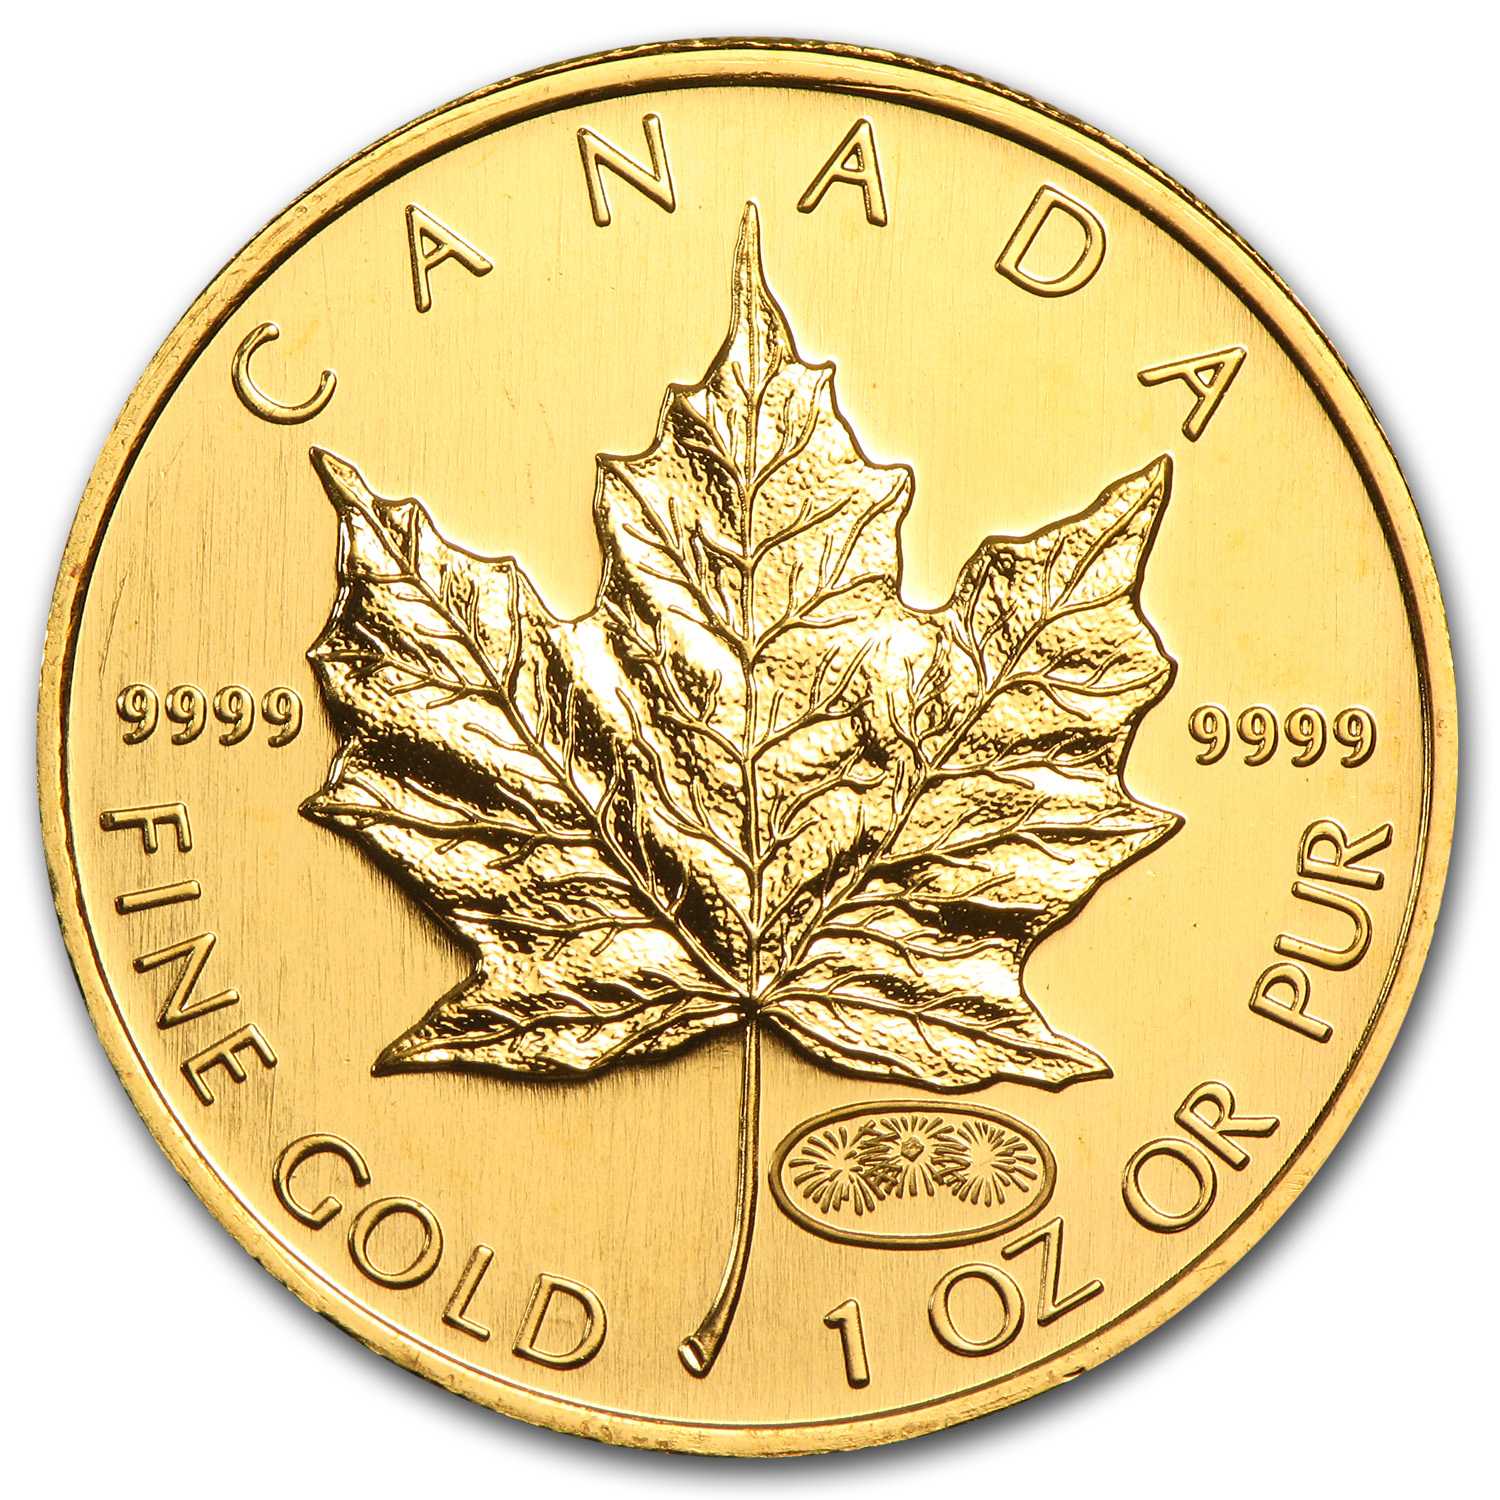 1999/2000 Canada 1 oz Gold Maple Leaf Fireworks Privy BU